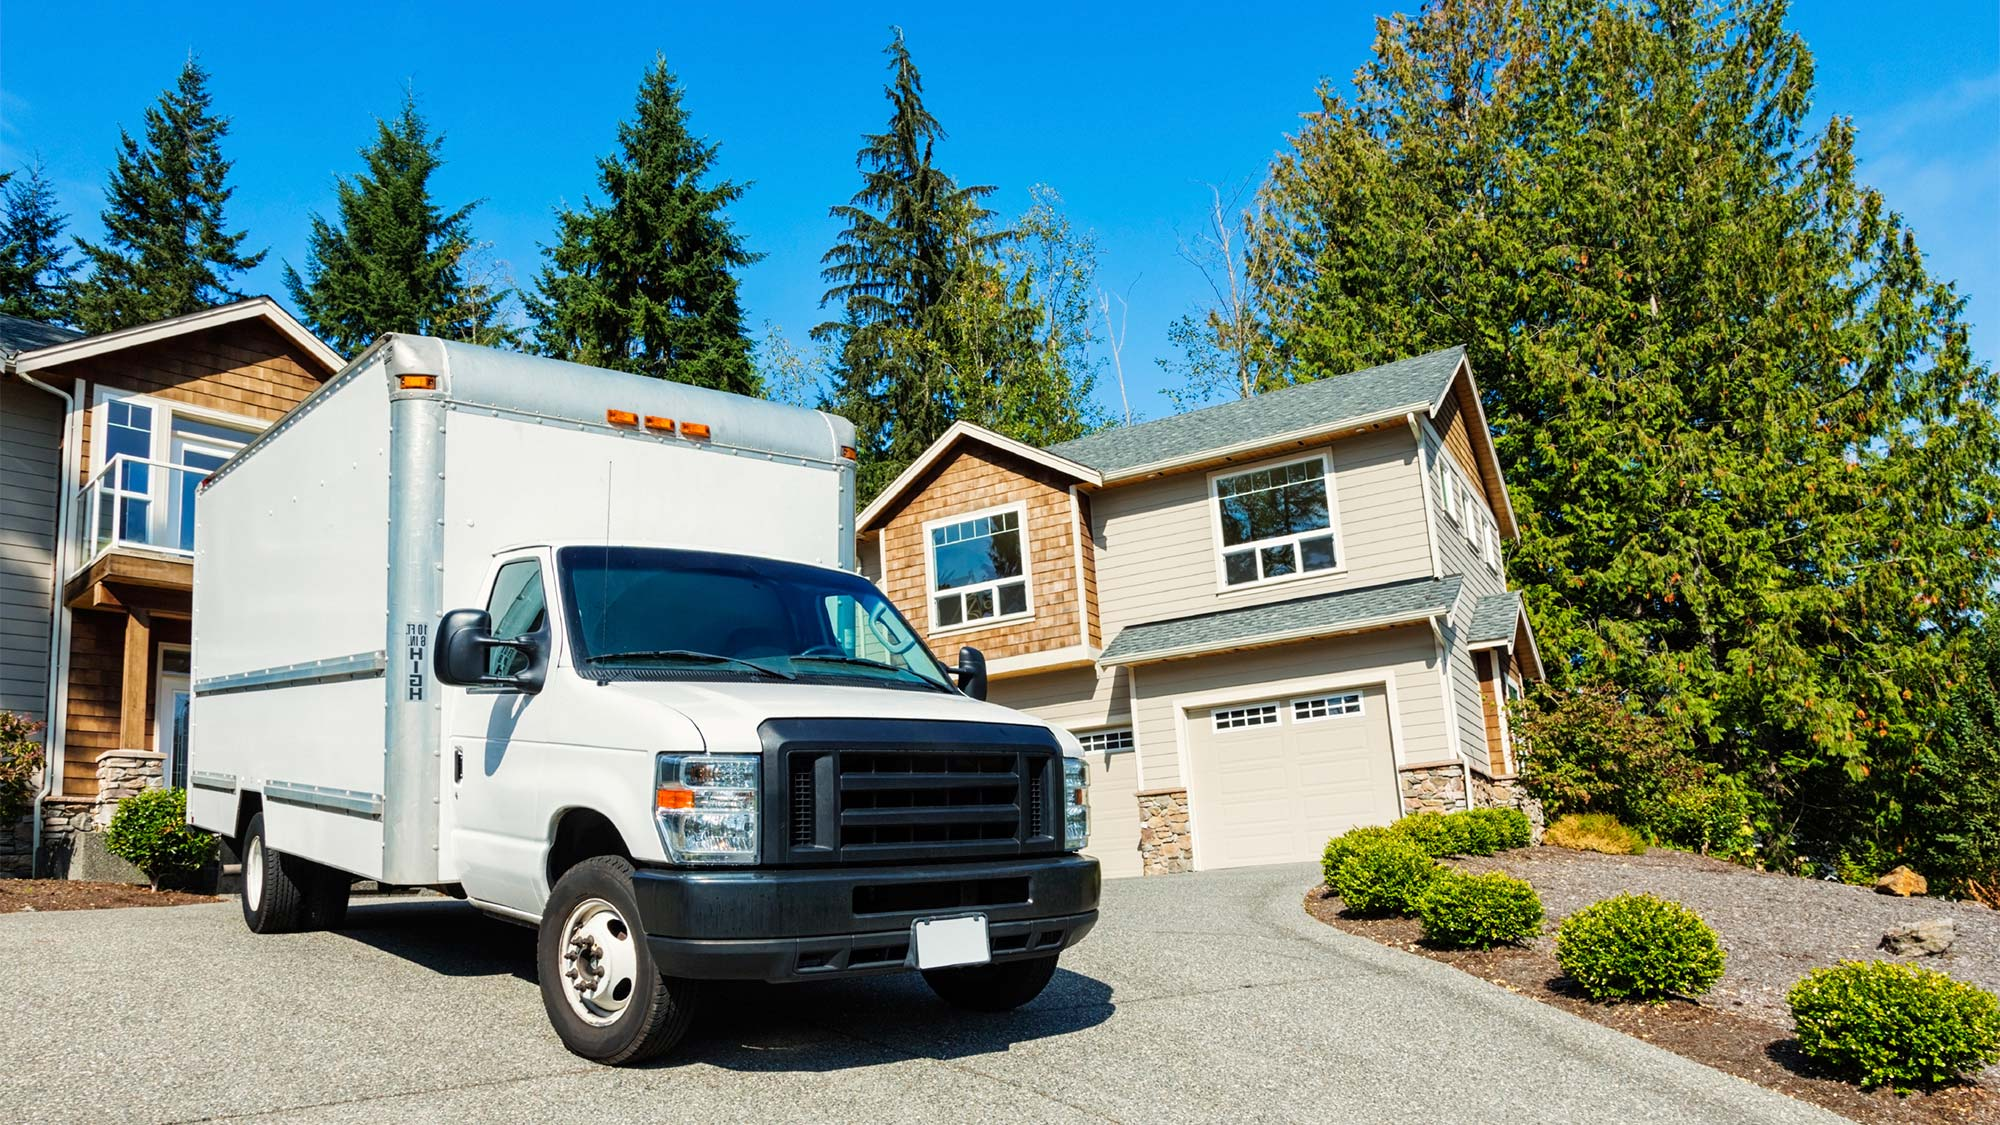 What Size U Haul Moving Truck Should You Rent for Your Move